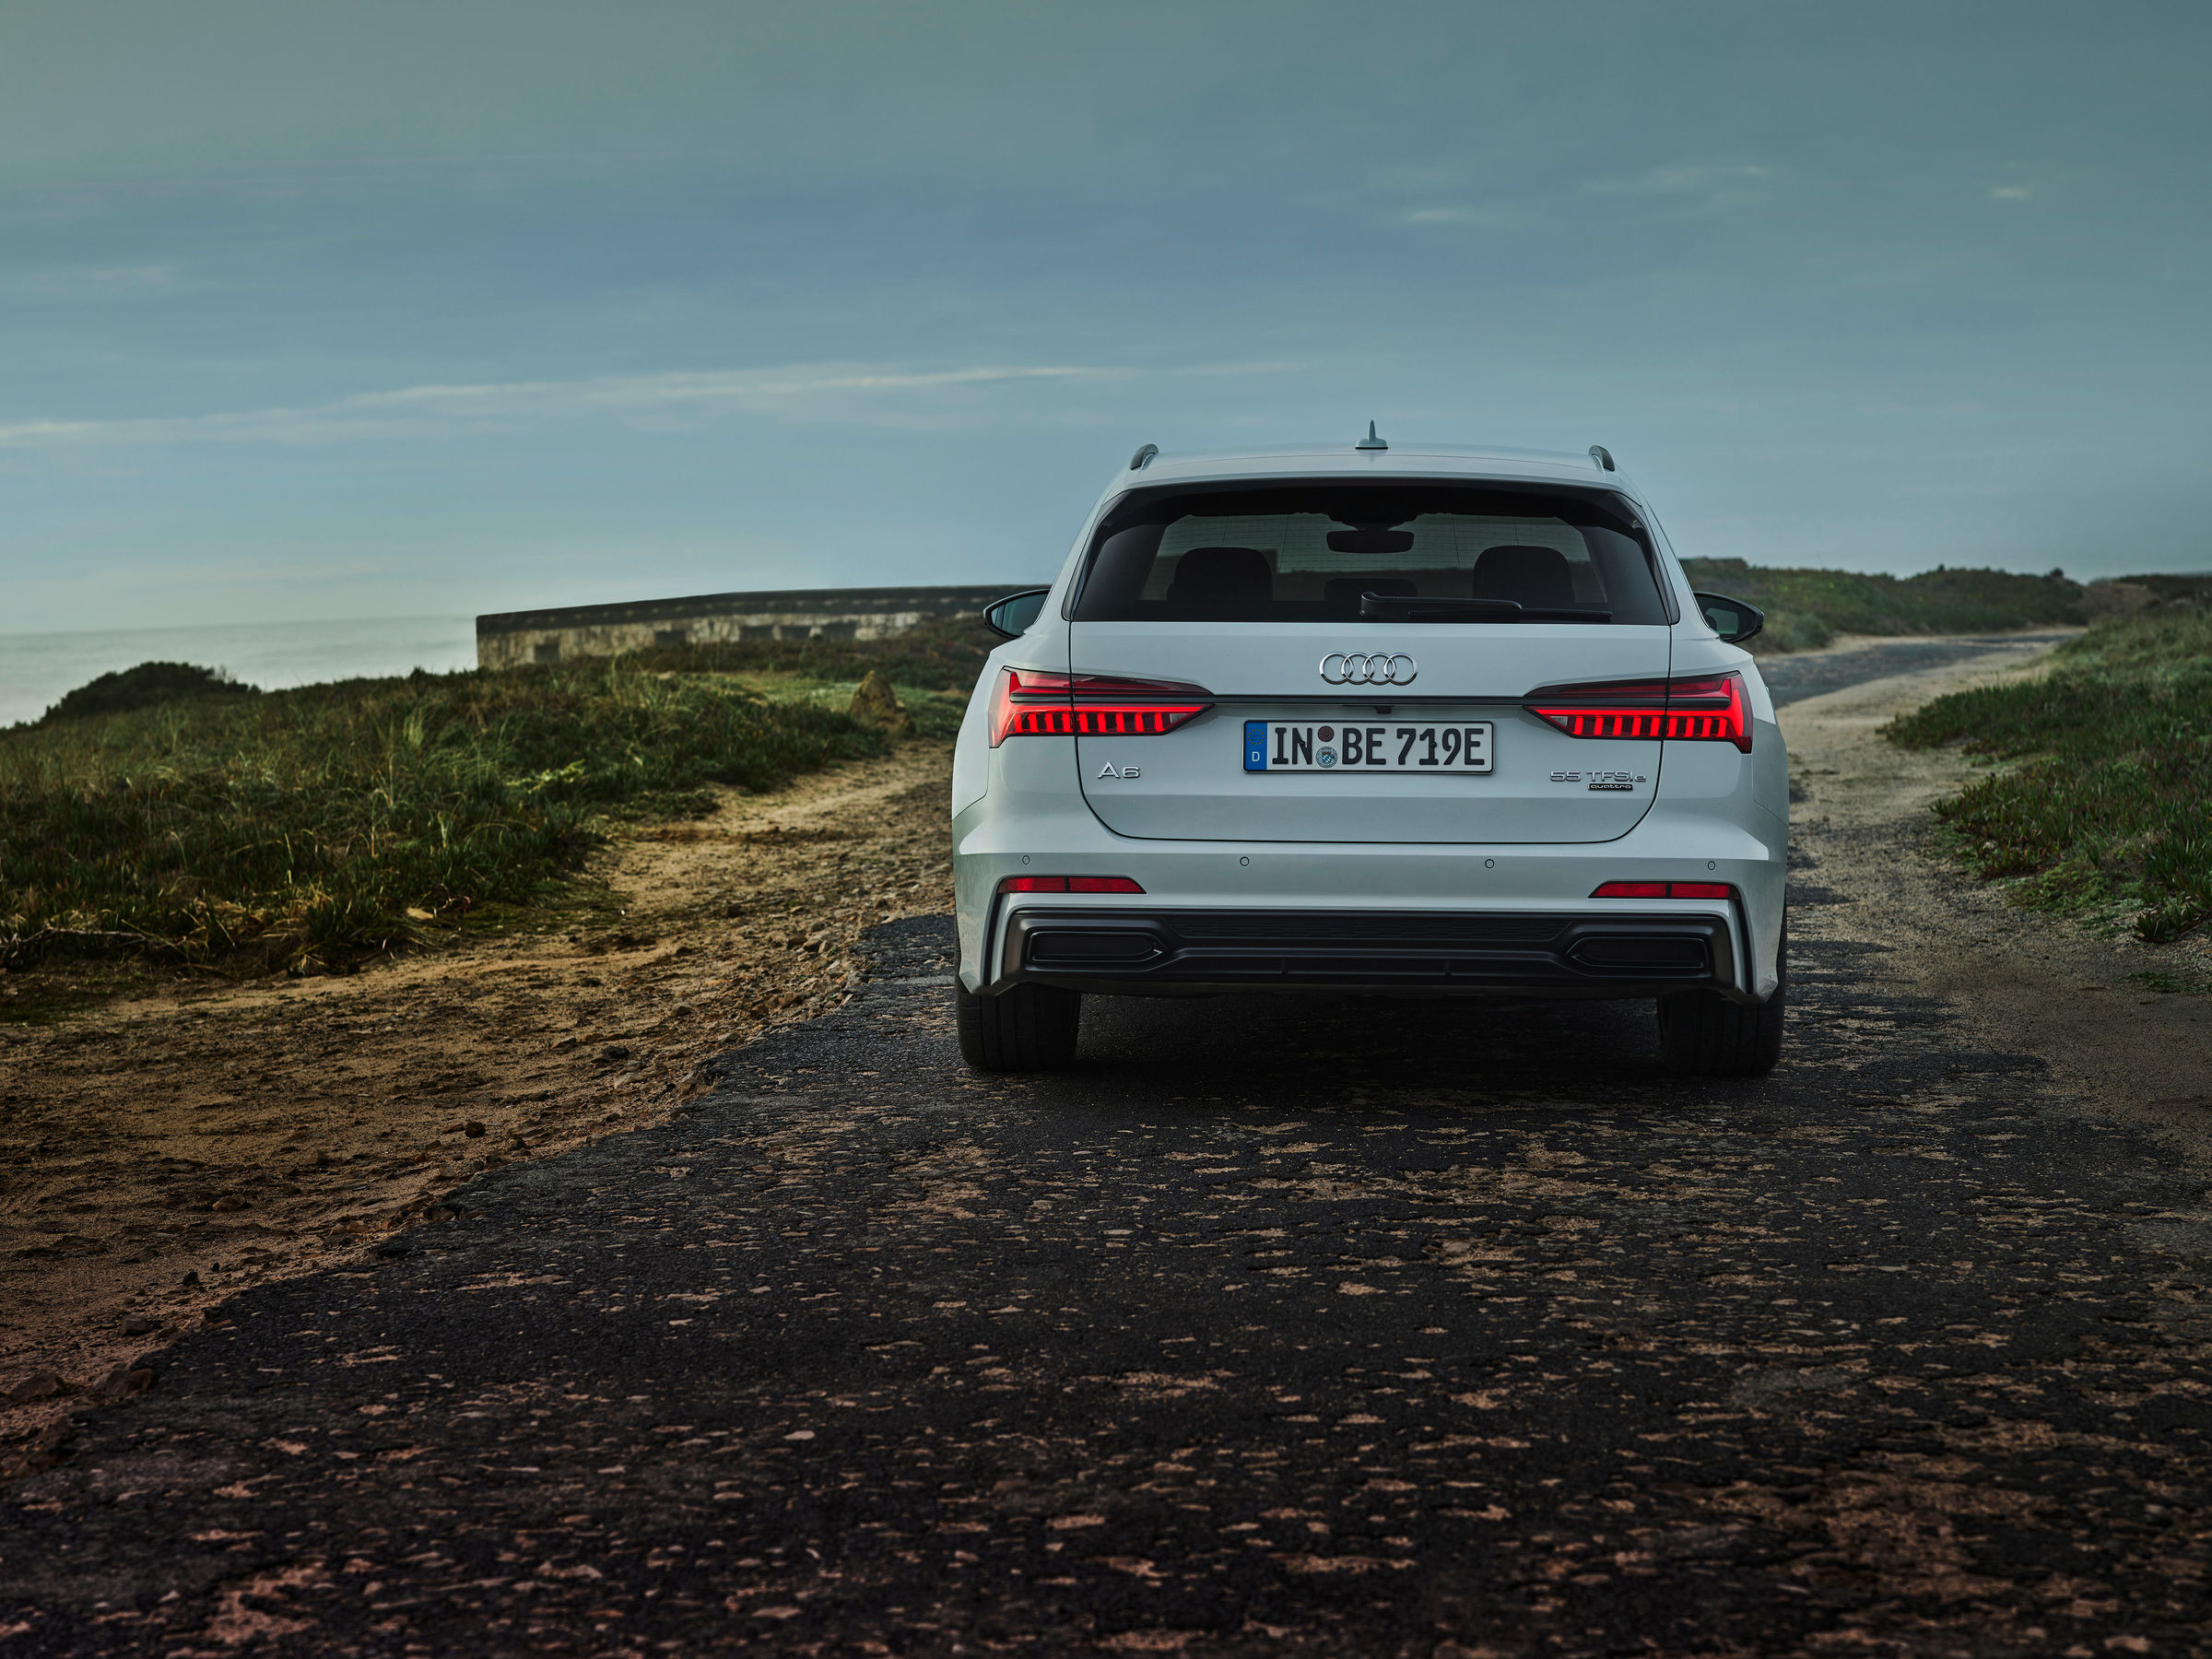 Audi full-size station wagon now as a plug-in hybrid: the new A6 Avant TFSI e quattro - Image 4